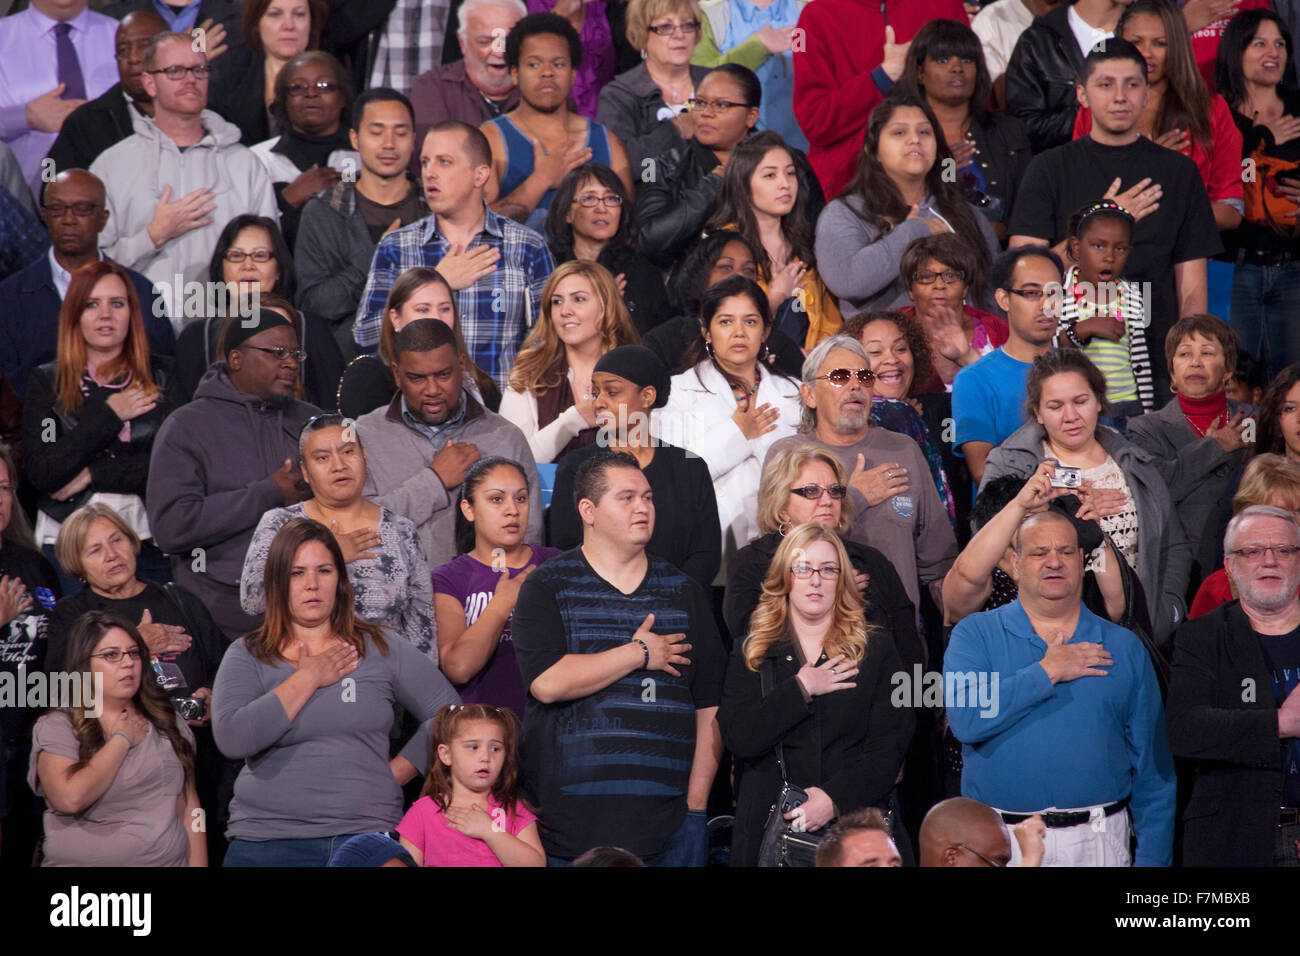 Multi-cultural crowd states Pledge of Allegiance at President Obama Campaign Rally, October 24, 2012, Doolittle - Stock Image